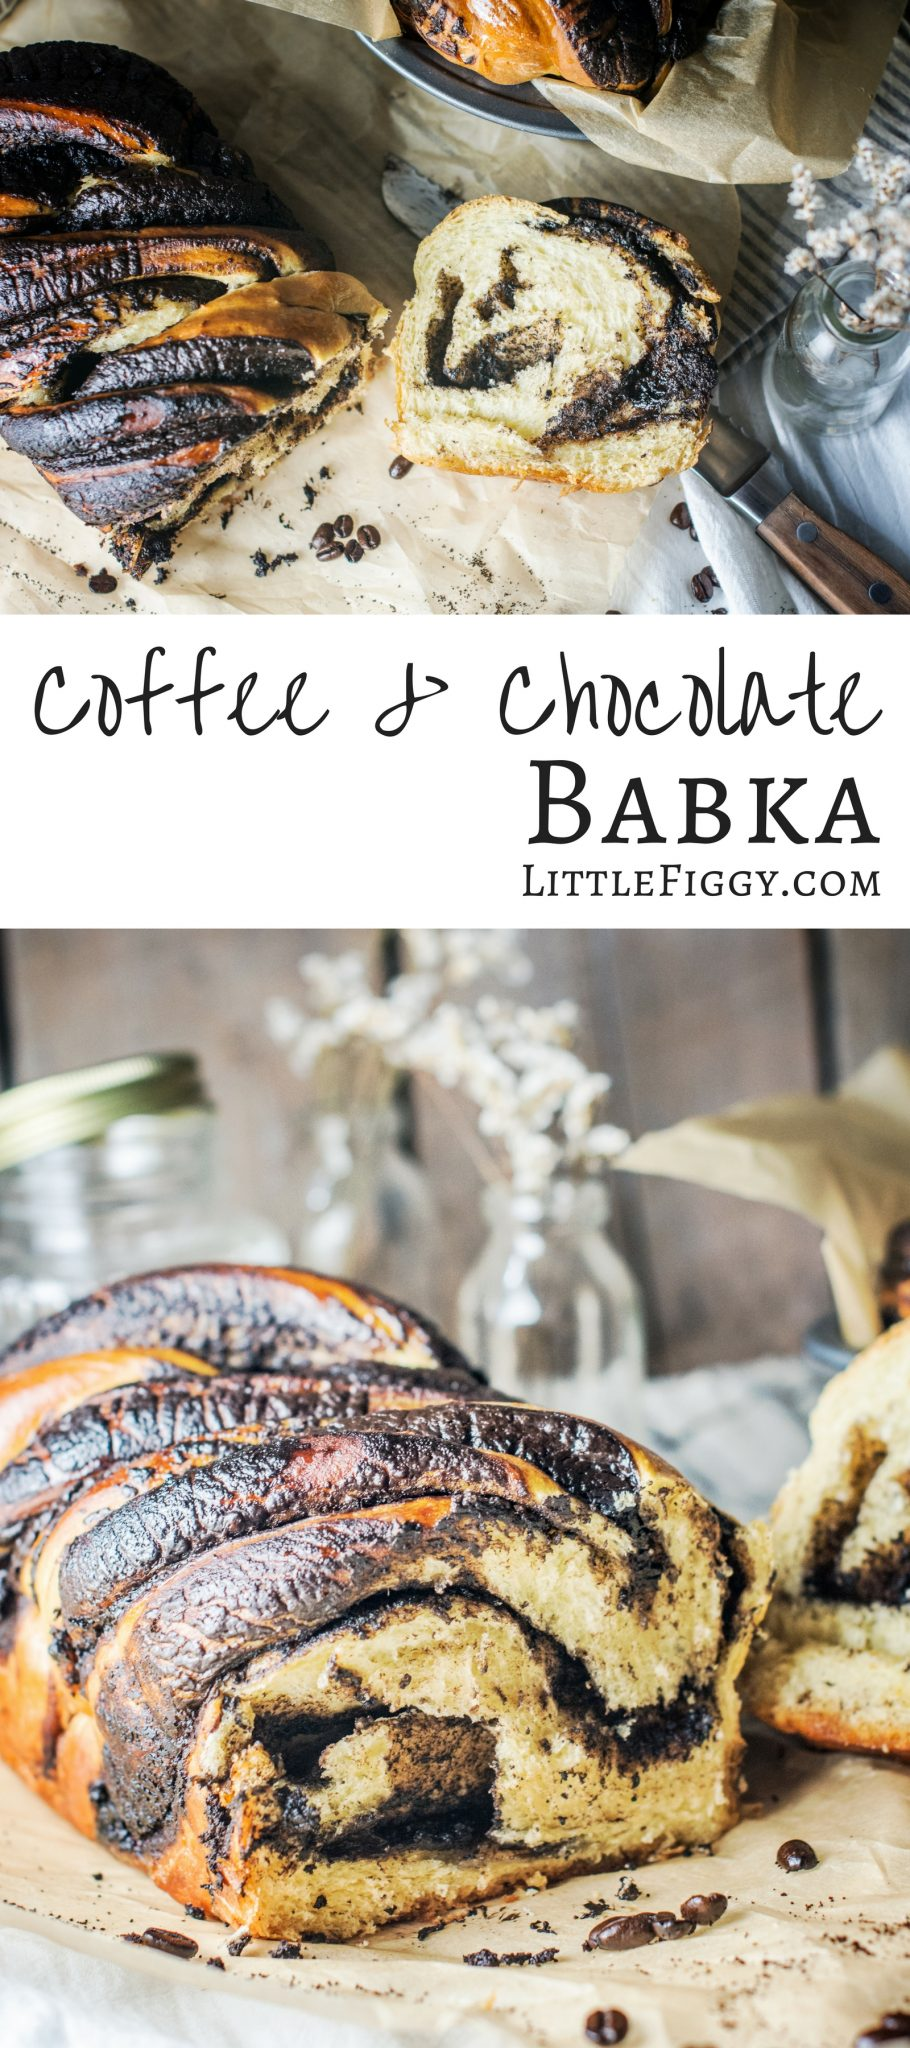 Coffee and Chocolate Babka! Make this gorgeous tasting sweet bread that has been infused with strongly brewed coffee and has ribbons of dark chocolate! @folgers #ad